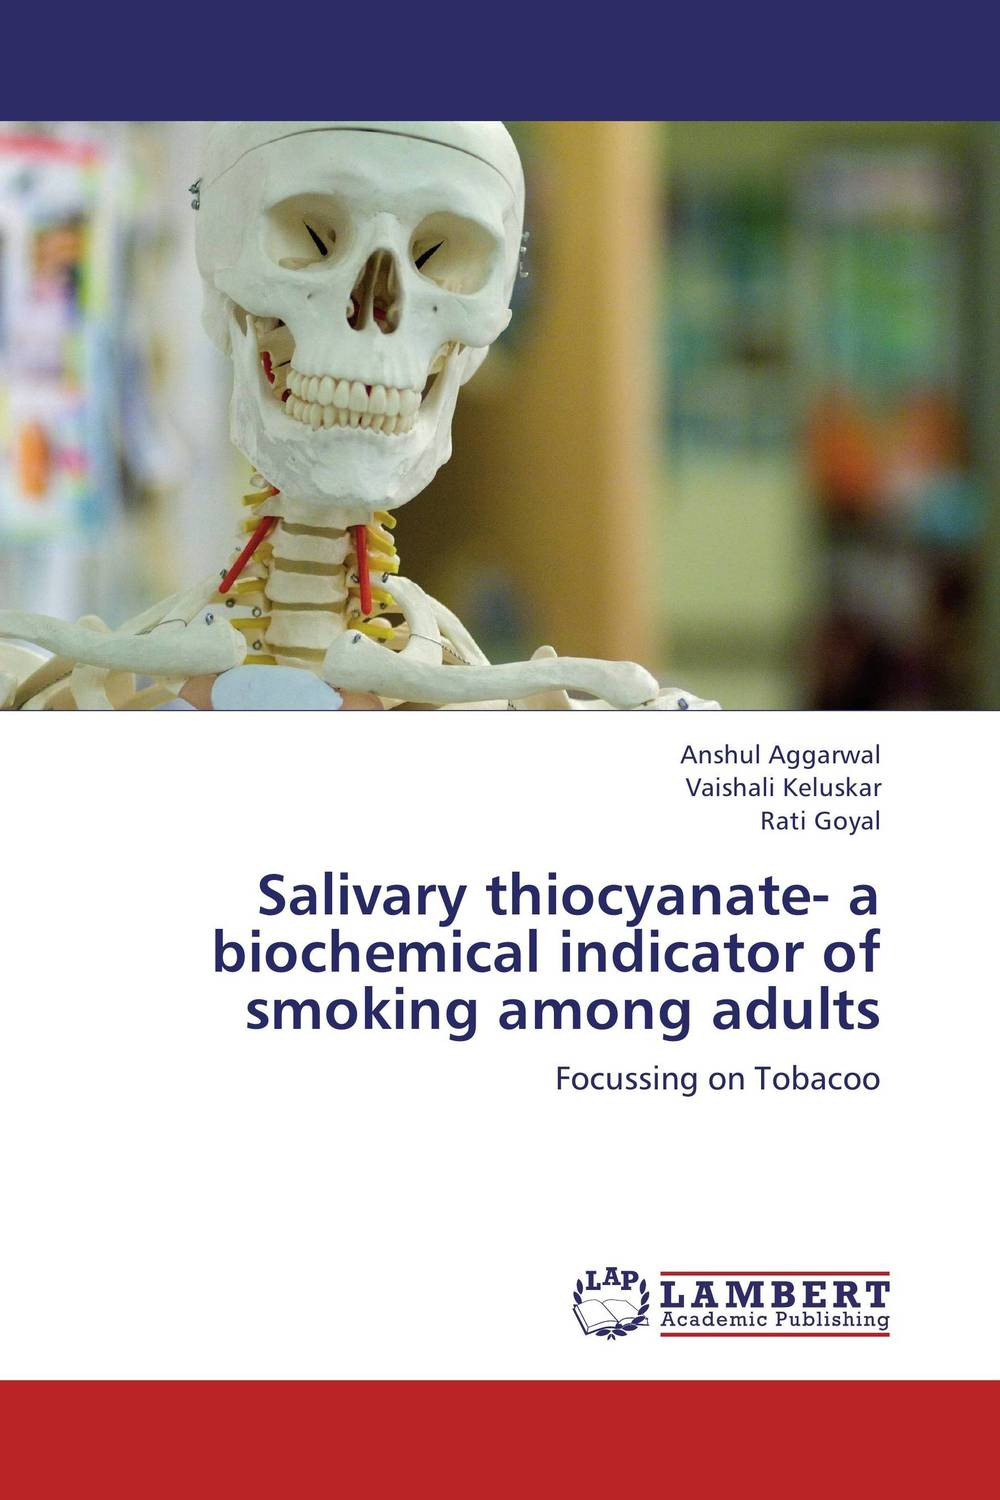 Salivary thiocyanate- a biochemical indicator of smoking among adults the role of evaluation as a mechanism for advancing principal practice